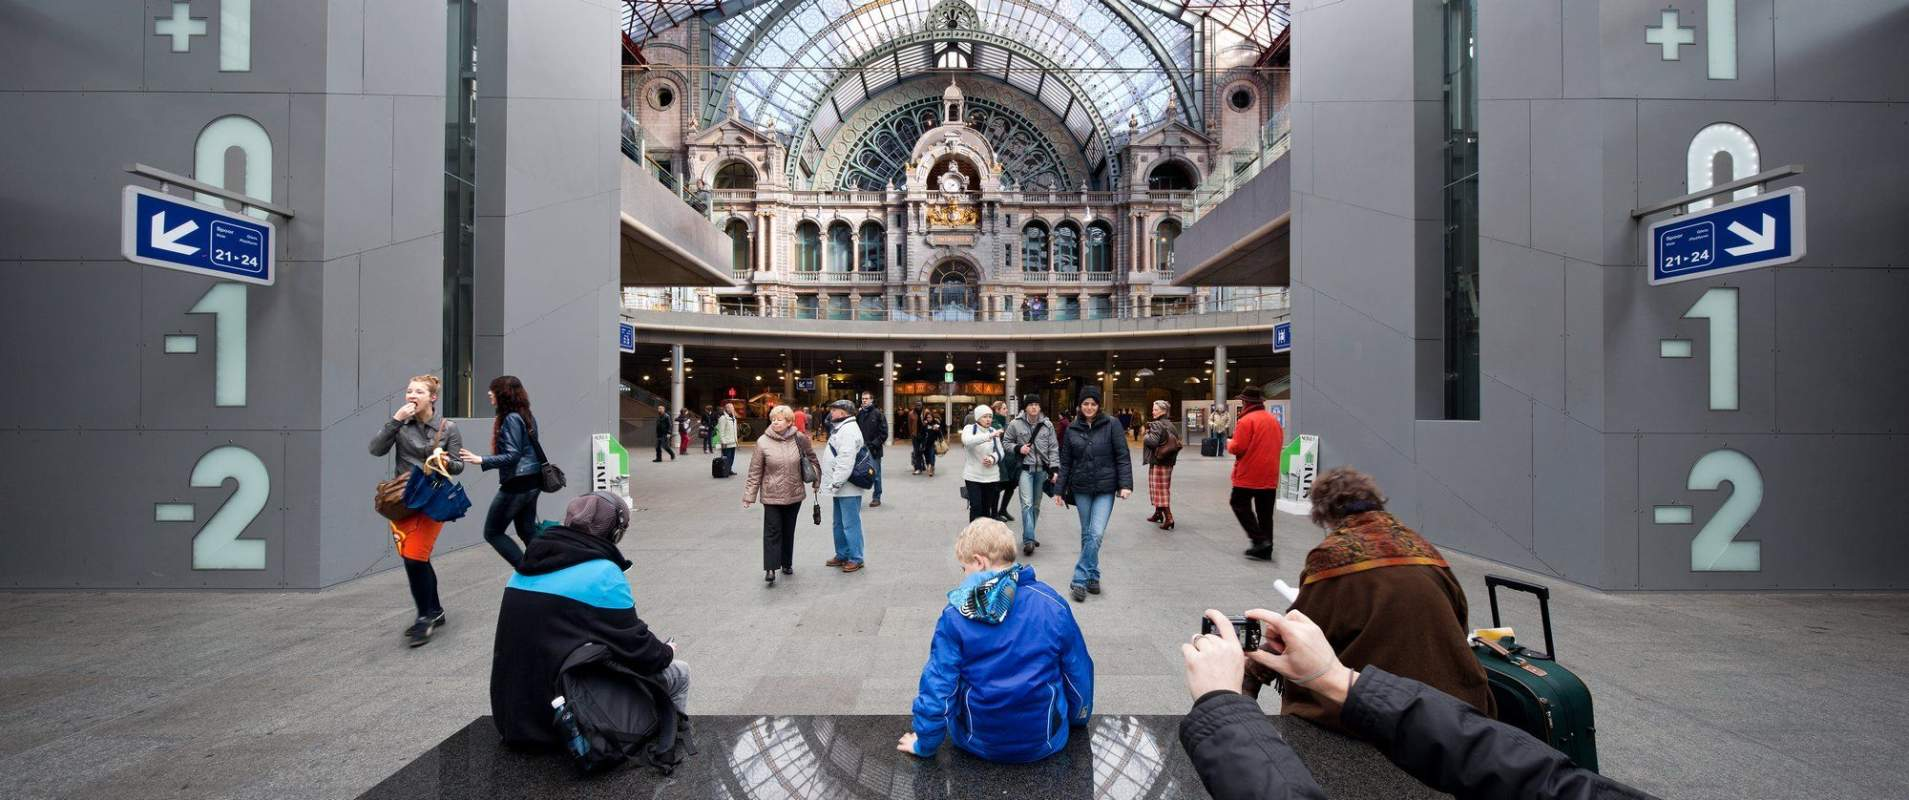 Centraal Station K Borghouts 20150602121202